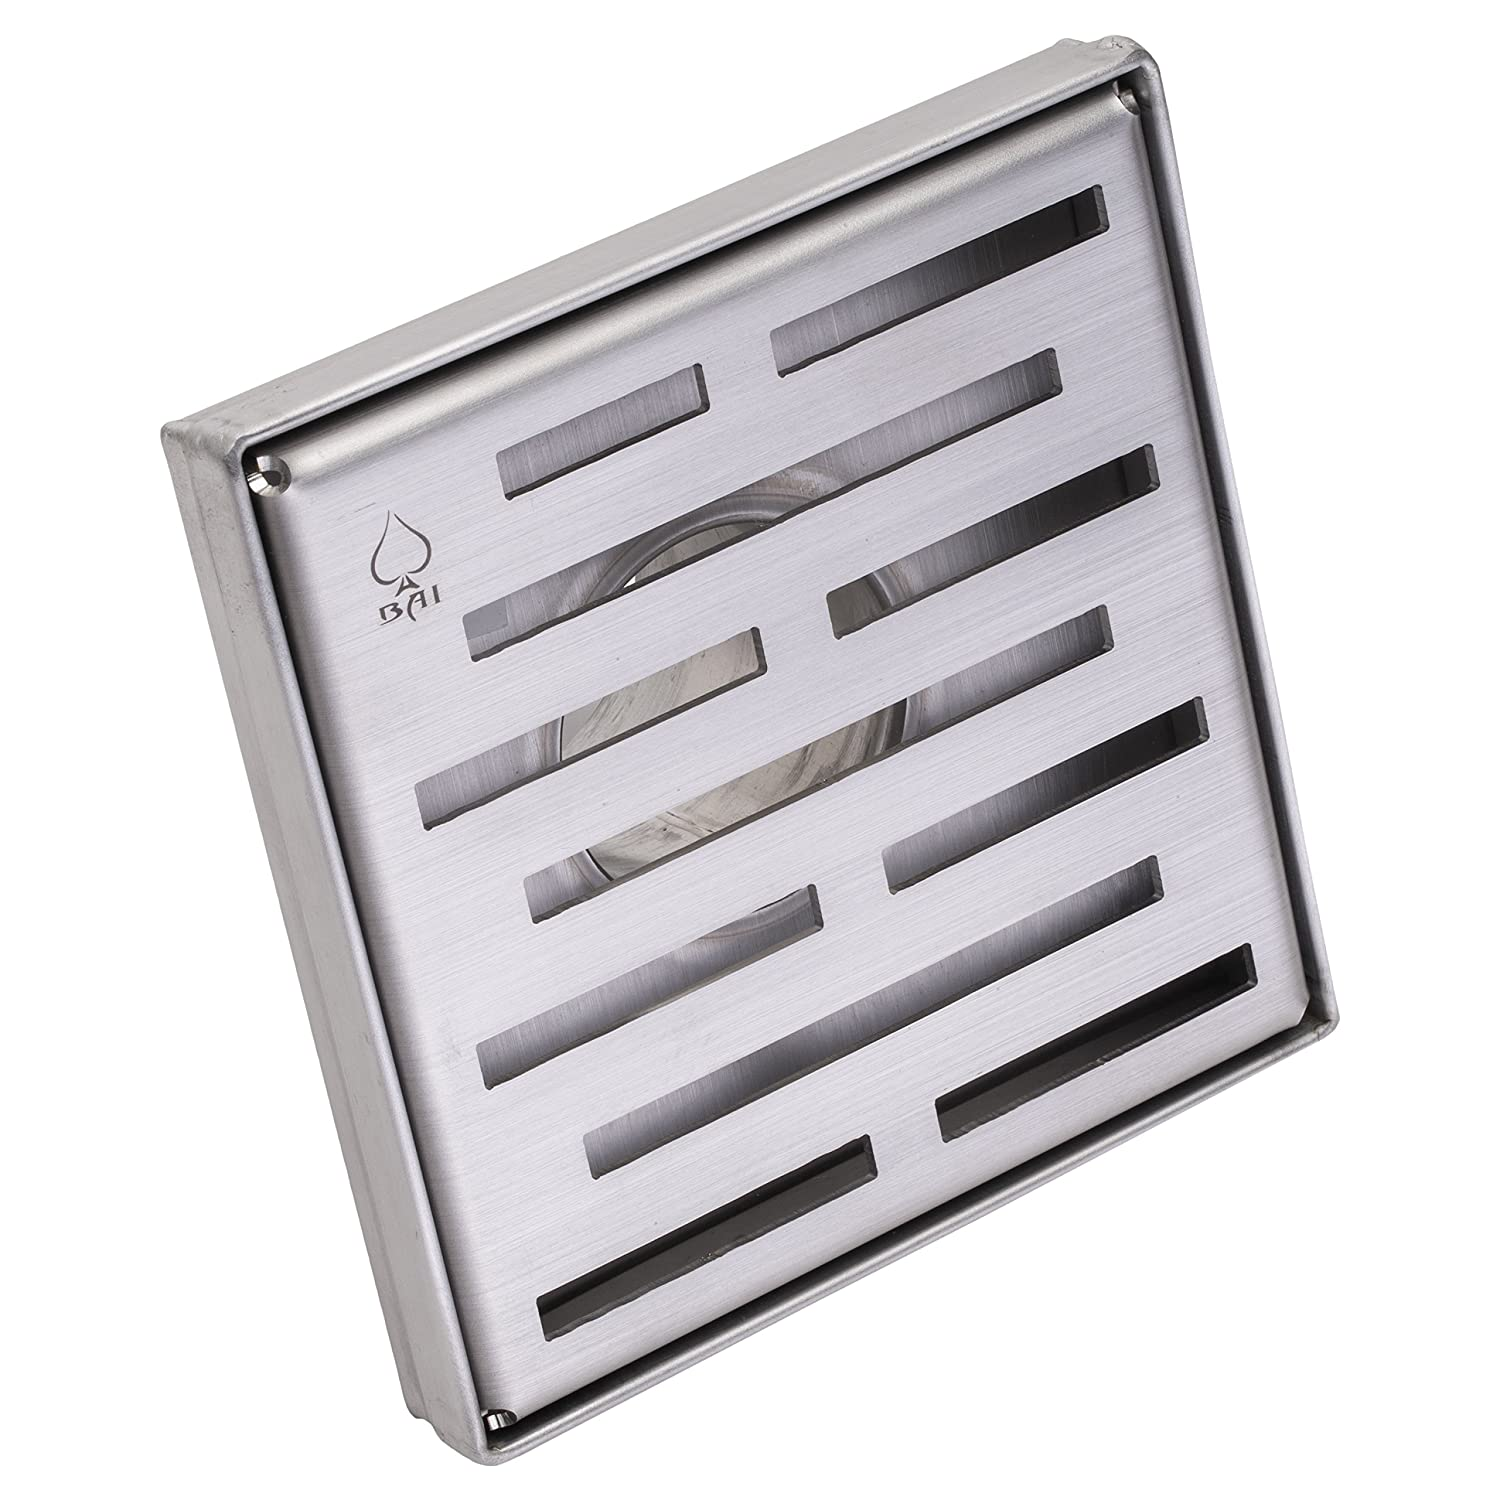 "BAI 0565 Stainless Steel Square Shower Drain 5""x 5"" 30%OFF"